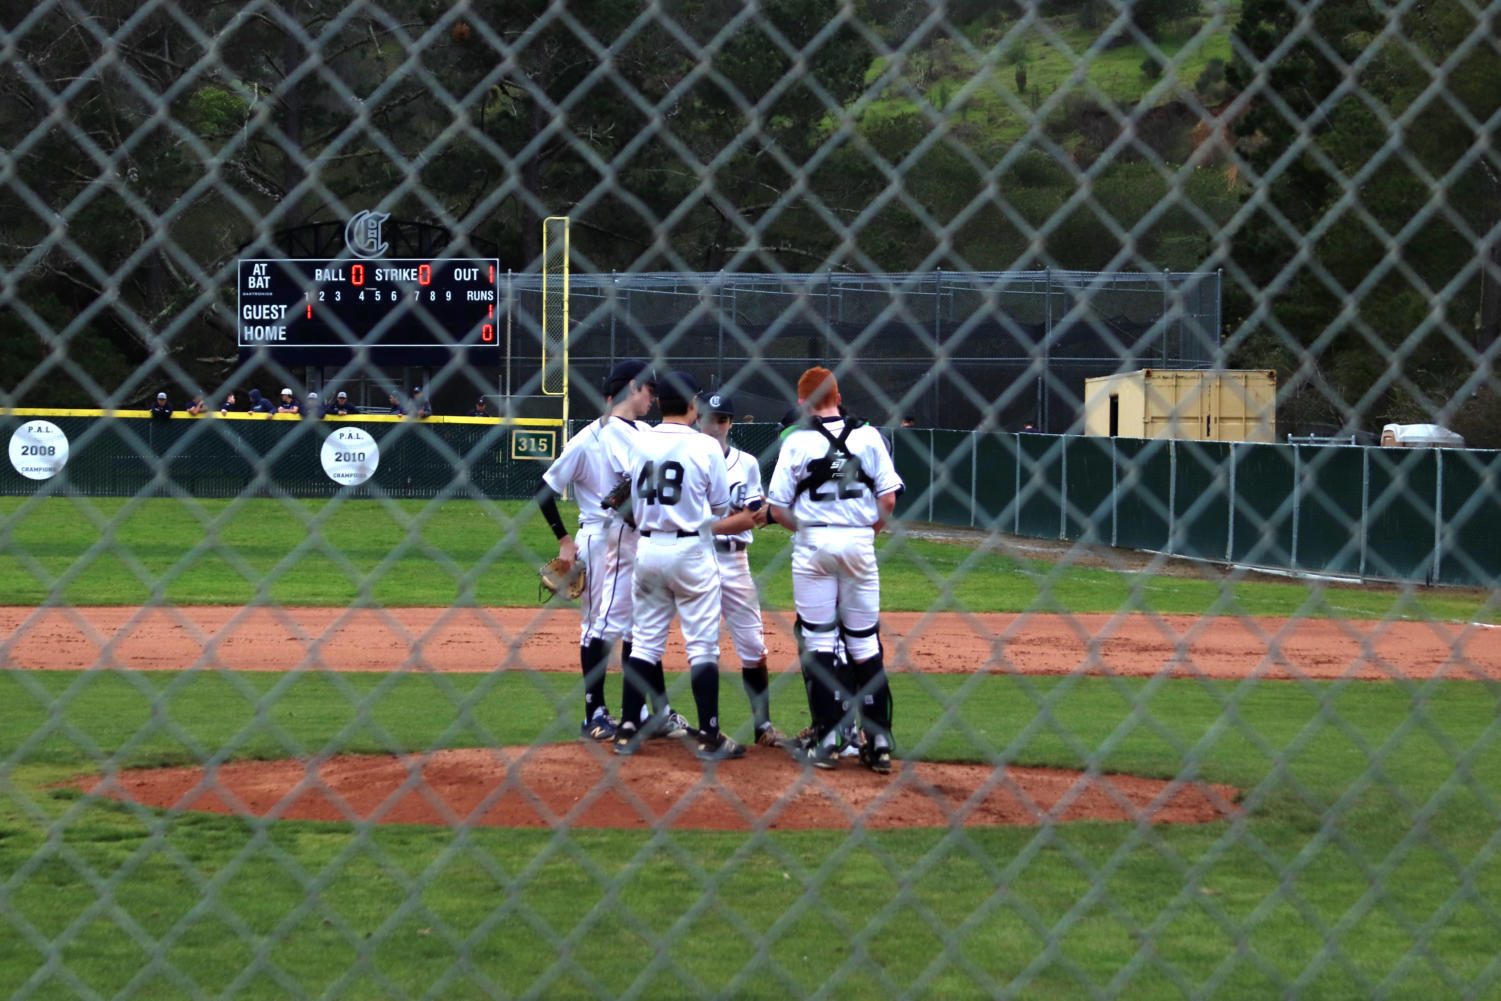 The+Scots+defense+meets+with+the+pitcher+on+the+mound+in+the+1st+inning+of+play.